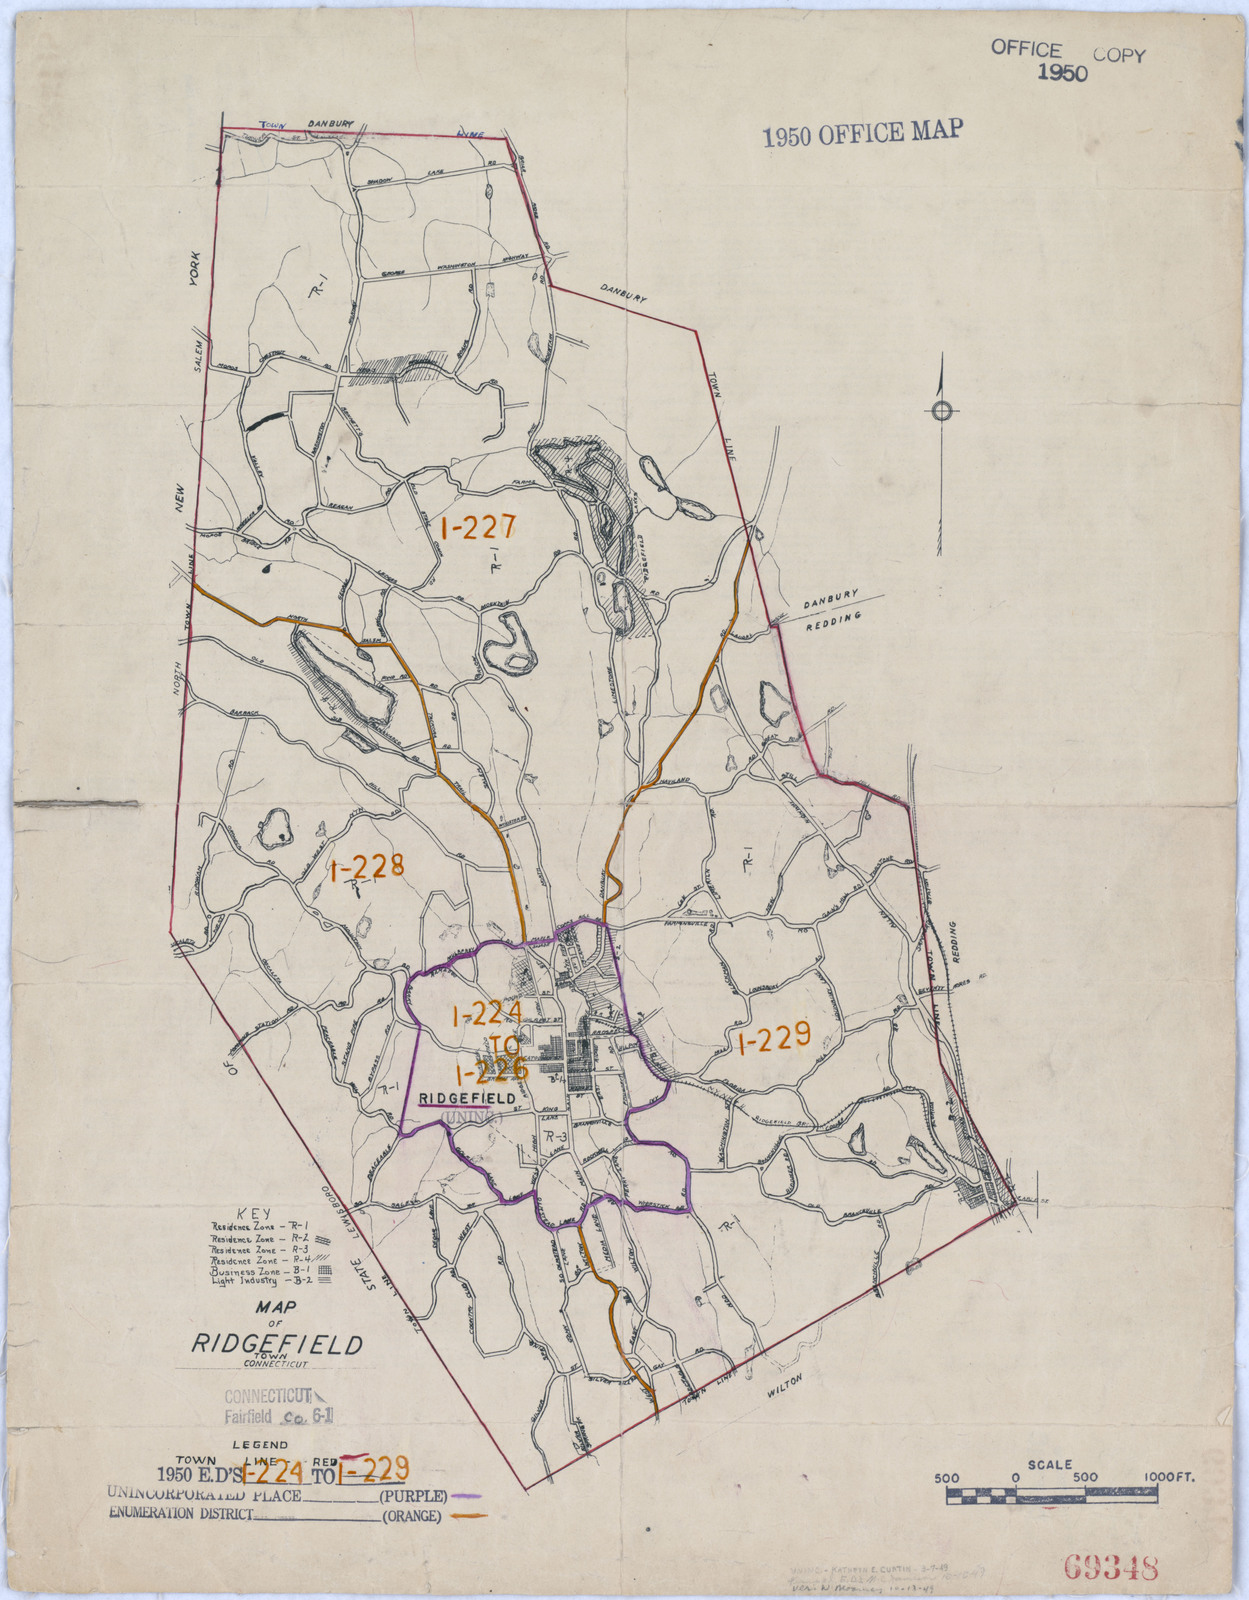 1950 Census Enumeration District Maps - Connecticut (CT) - Fairfield ...